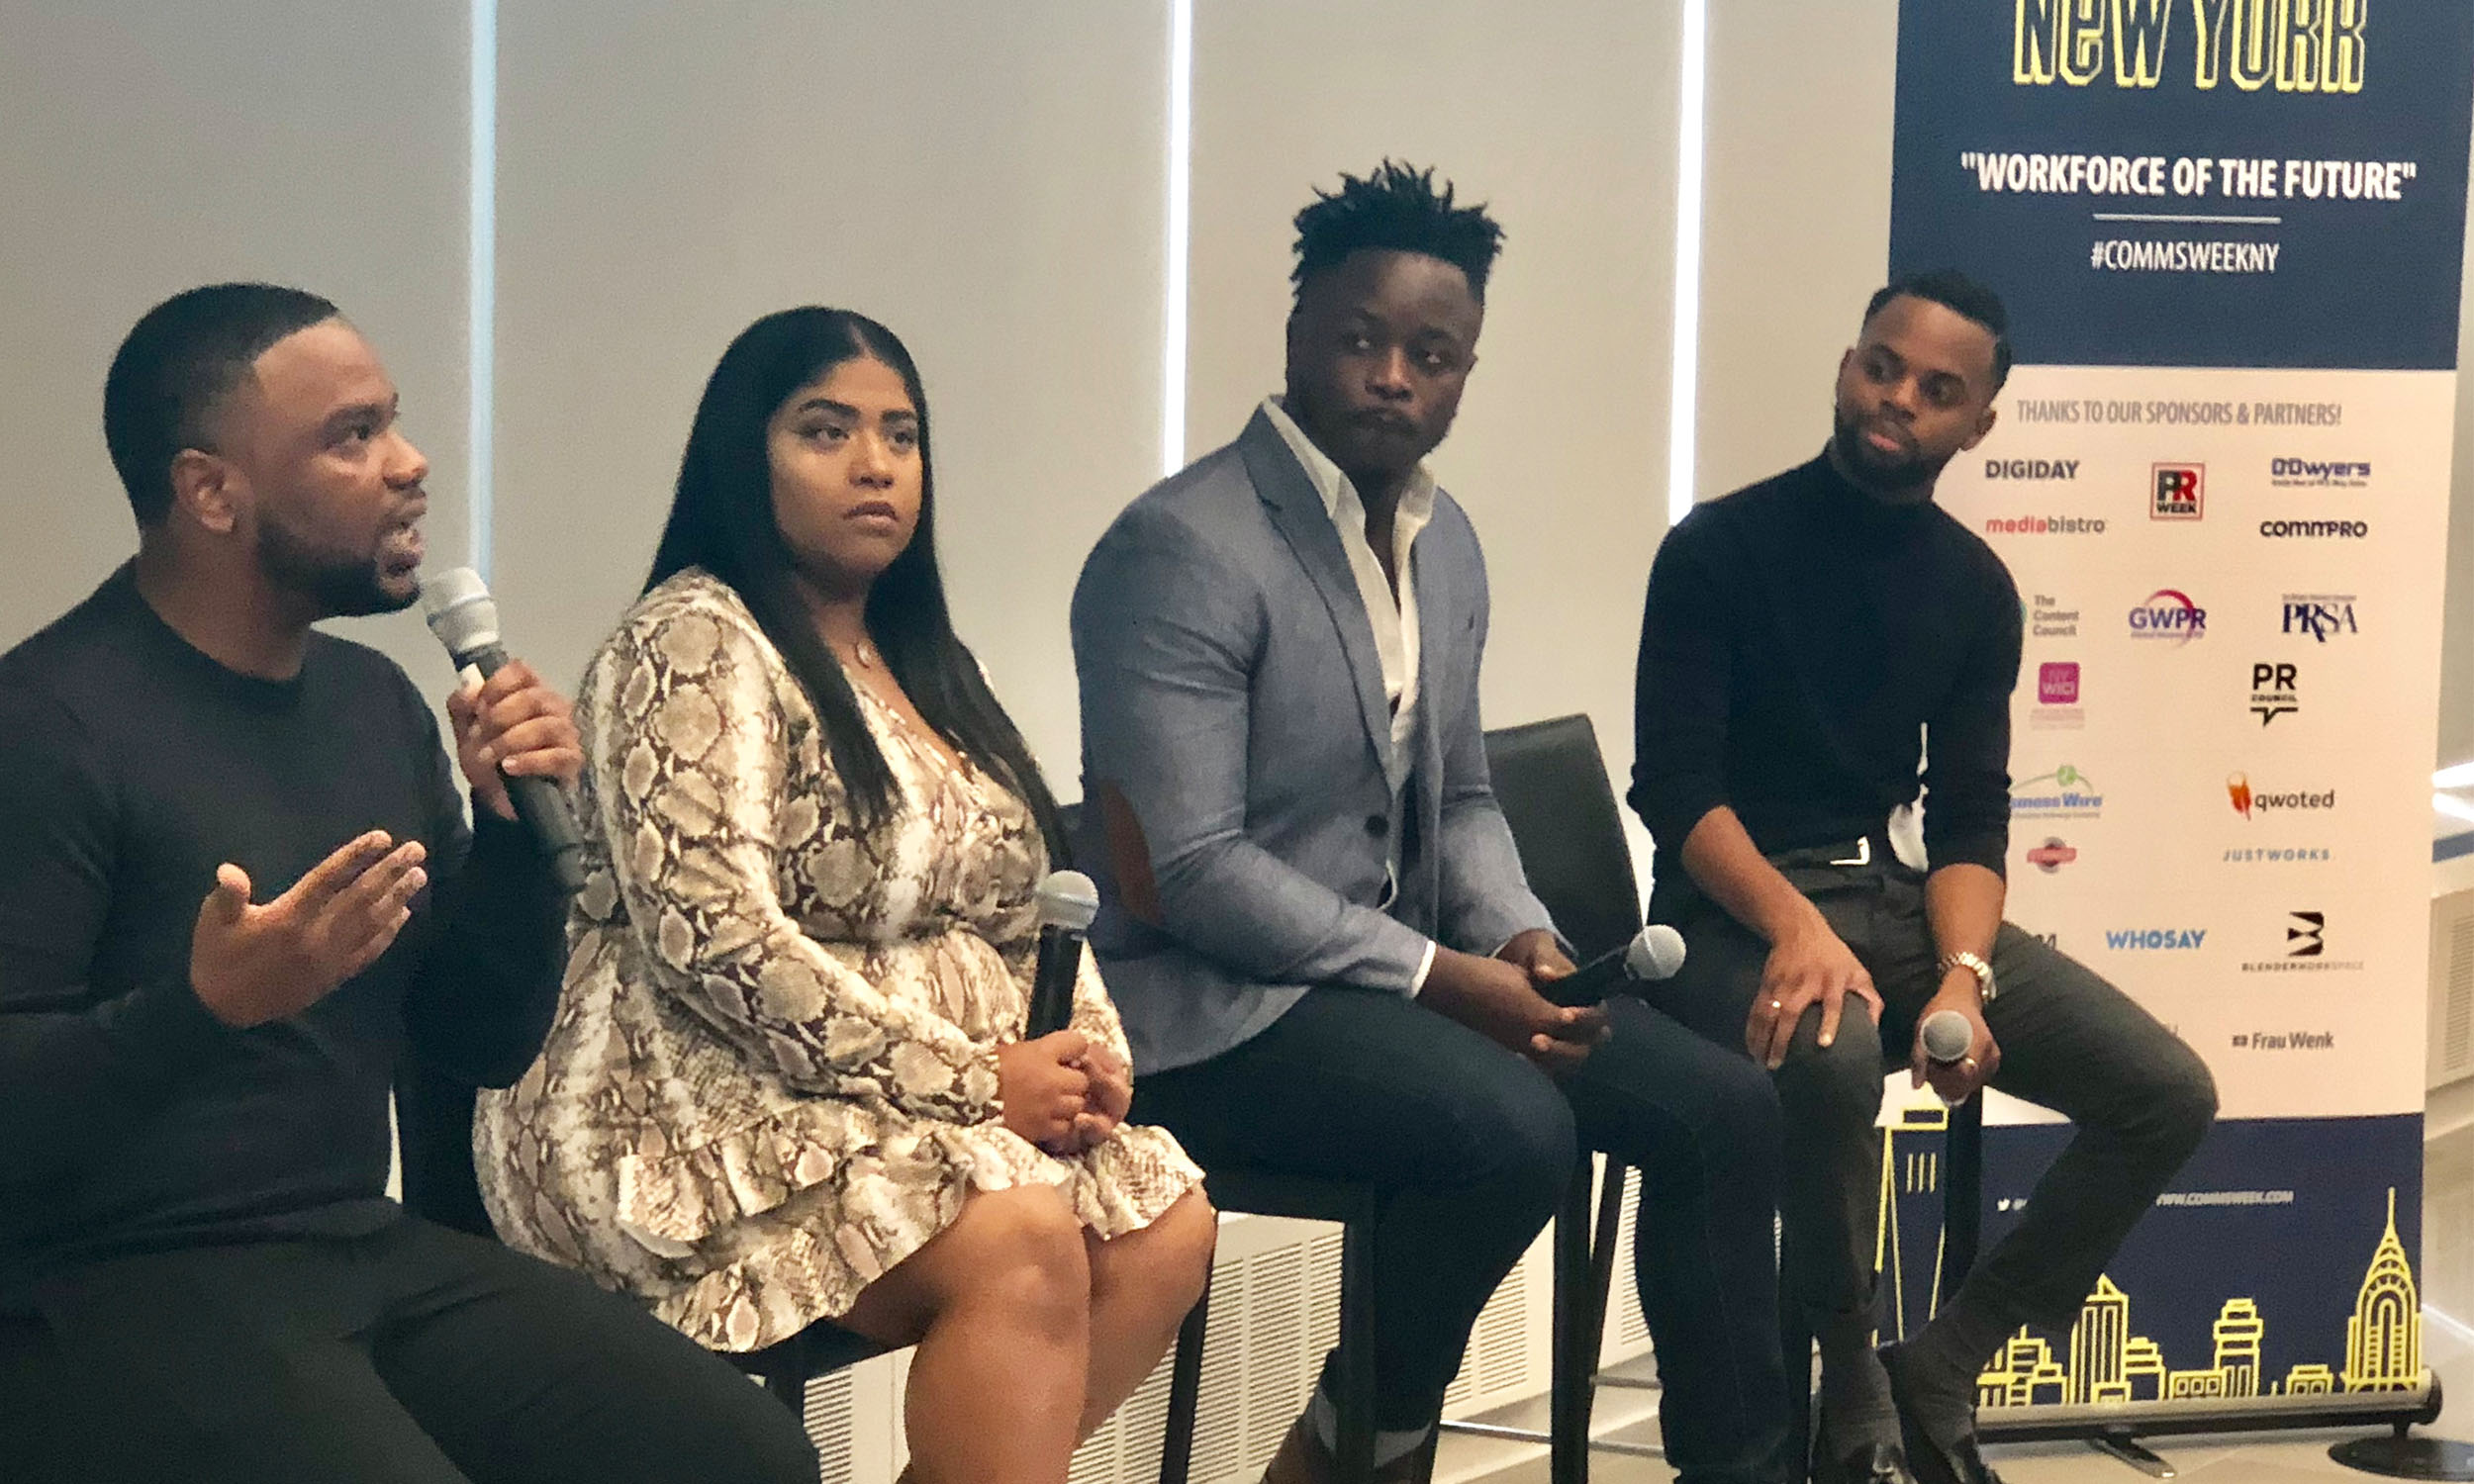 Martin, Nauth, Bastien, and Morton shared multicultural best practices during Communications Week NY at Viacom